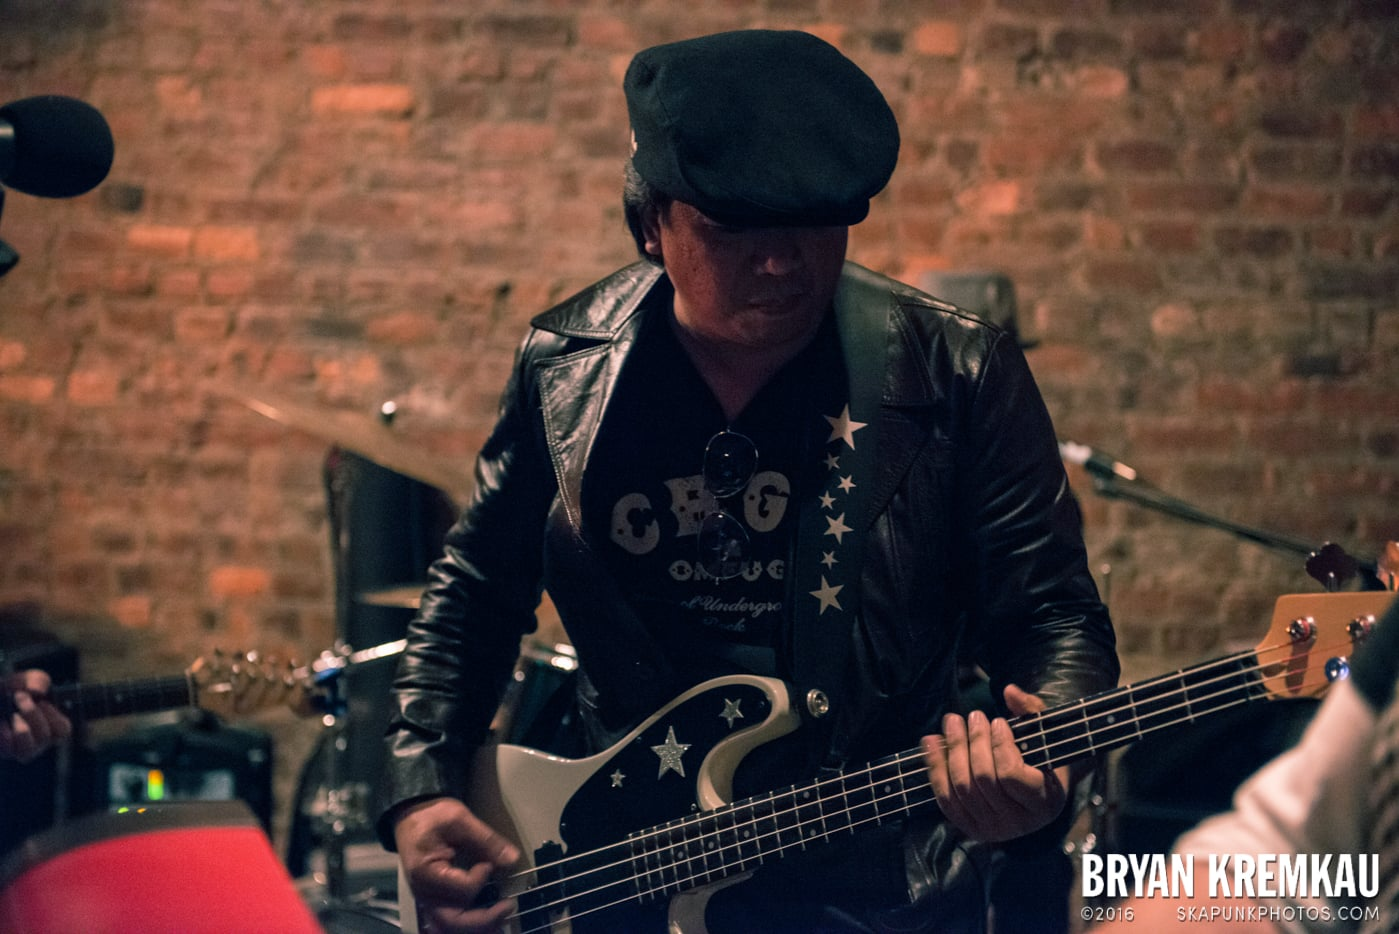 Beat Brigade @ Electric Avenue, Characters, NYC – 4.13.13 (5)